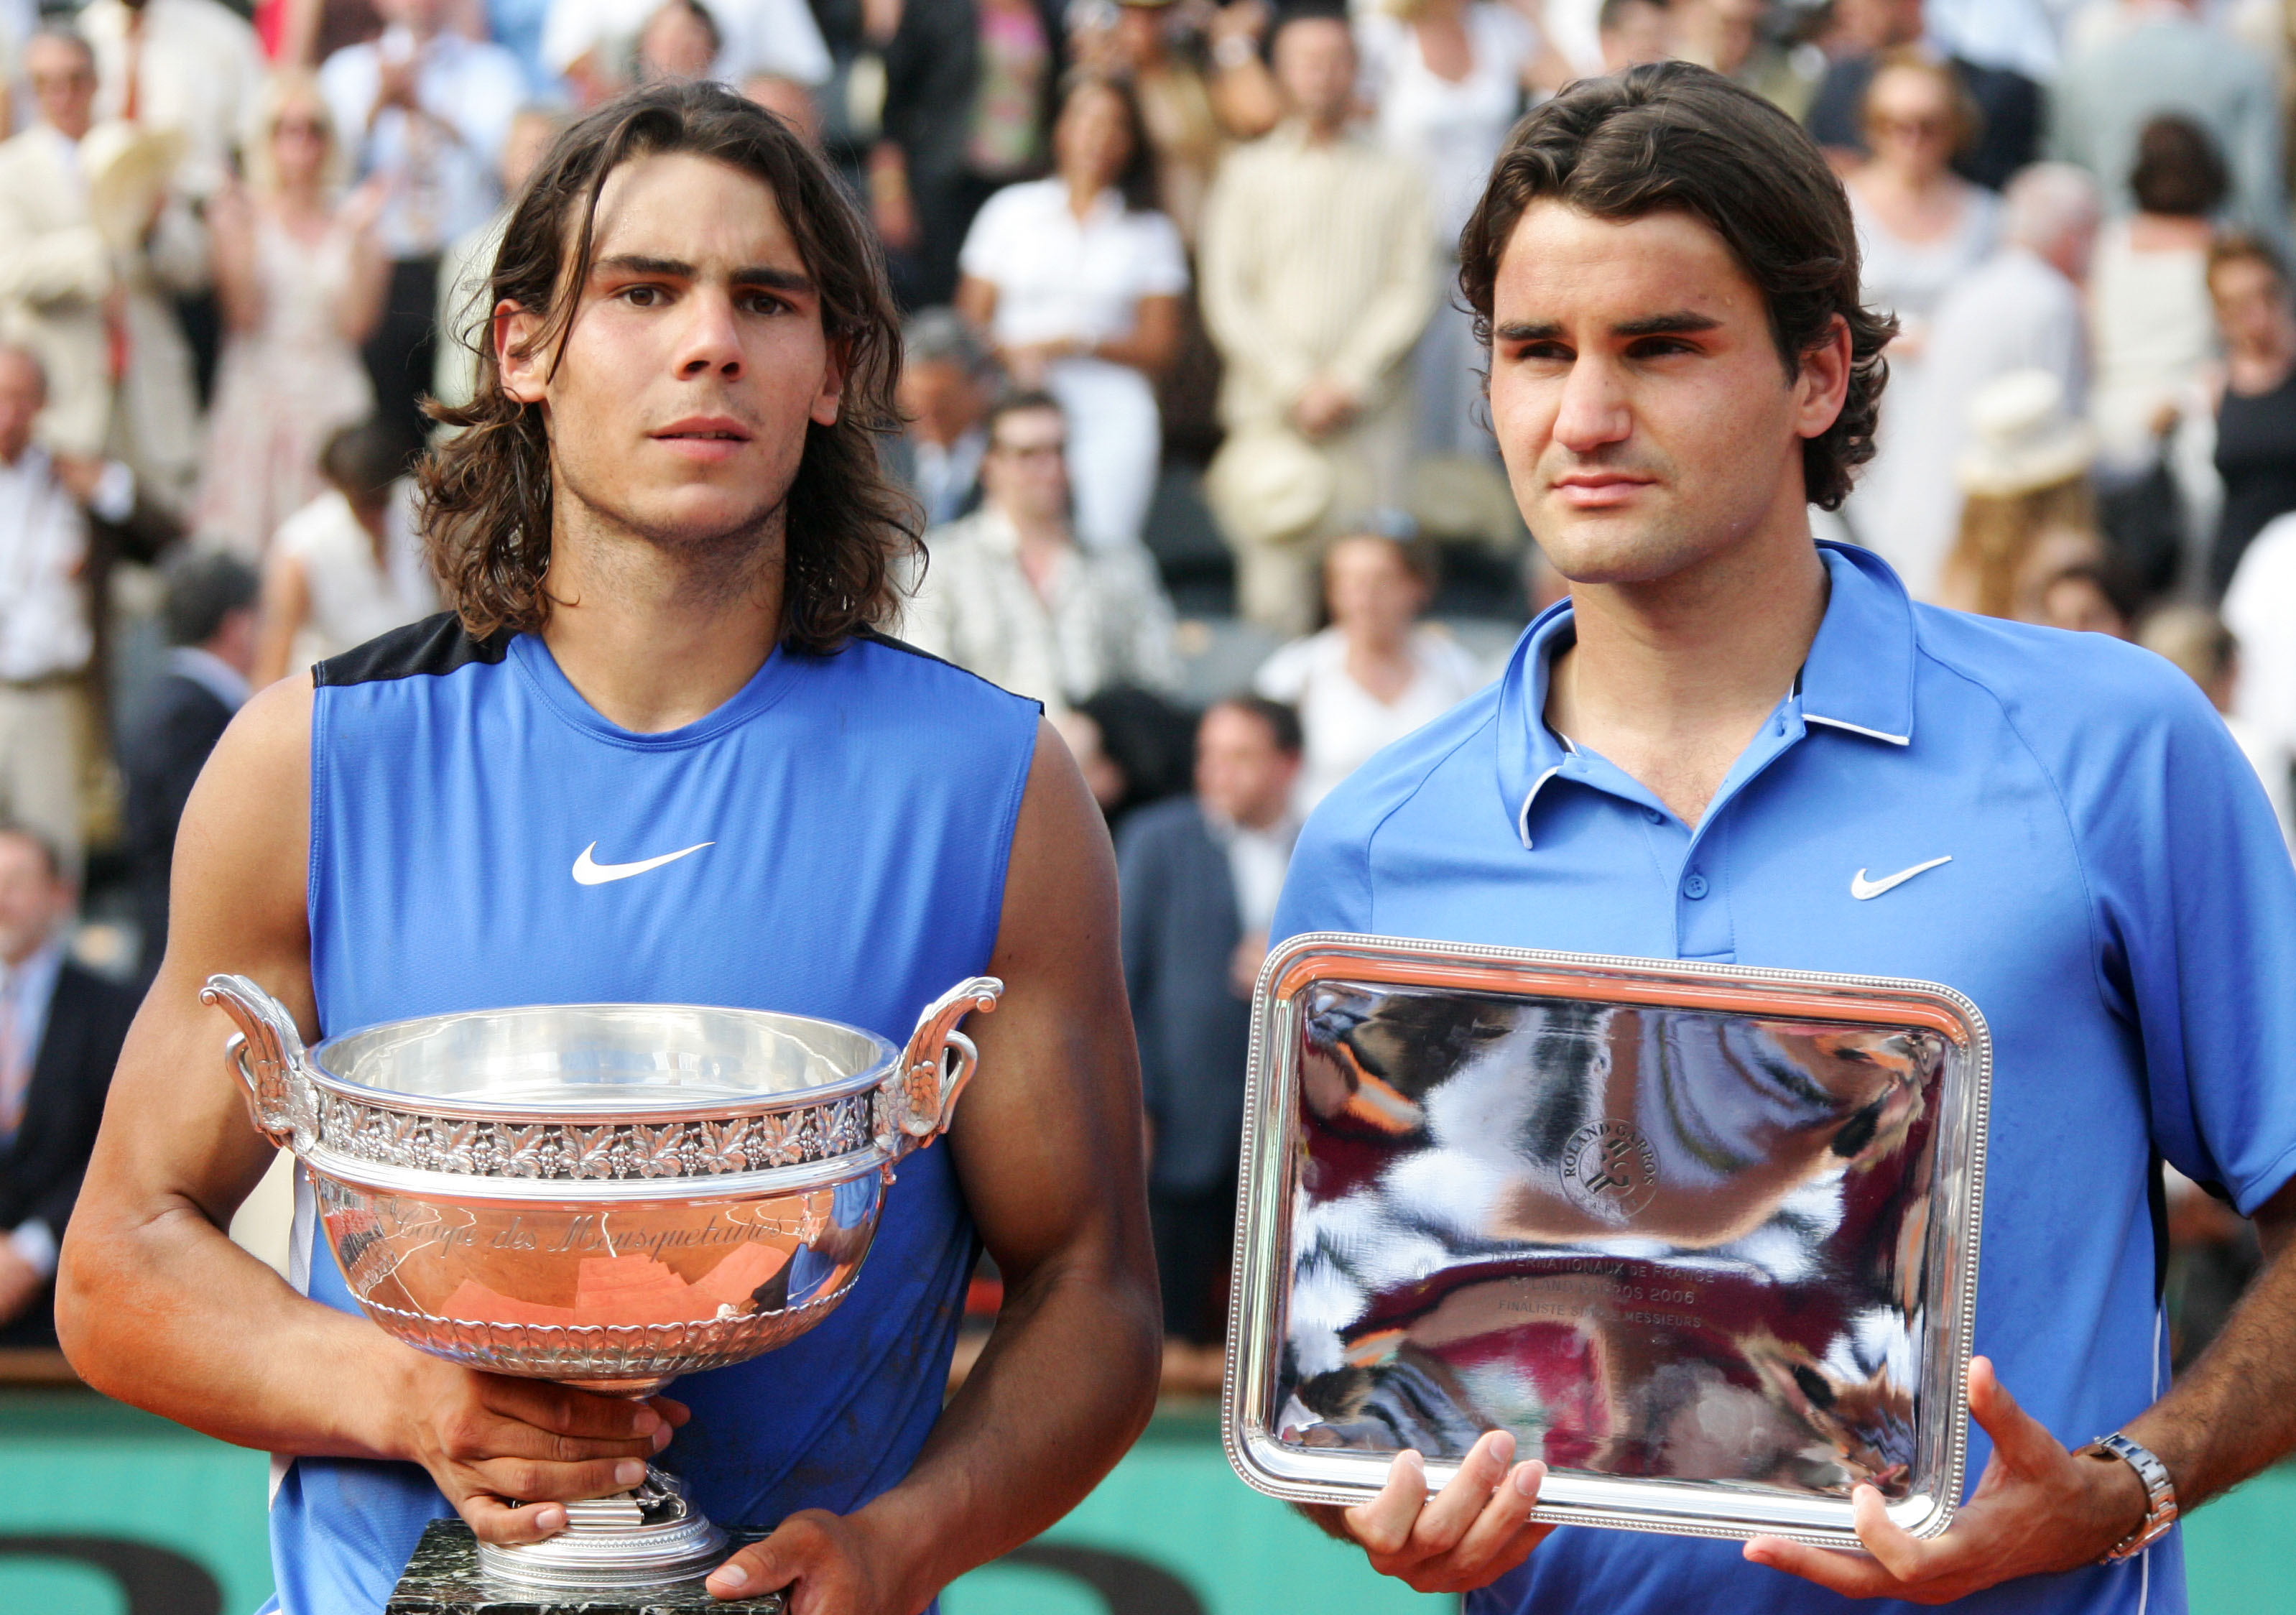 ...and Roger Federer-matching blue in the front. And with that, never again did Nike try to make two kits out of one swath of fabric for its two male stars.